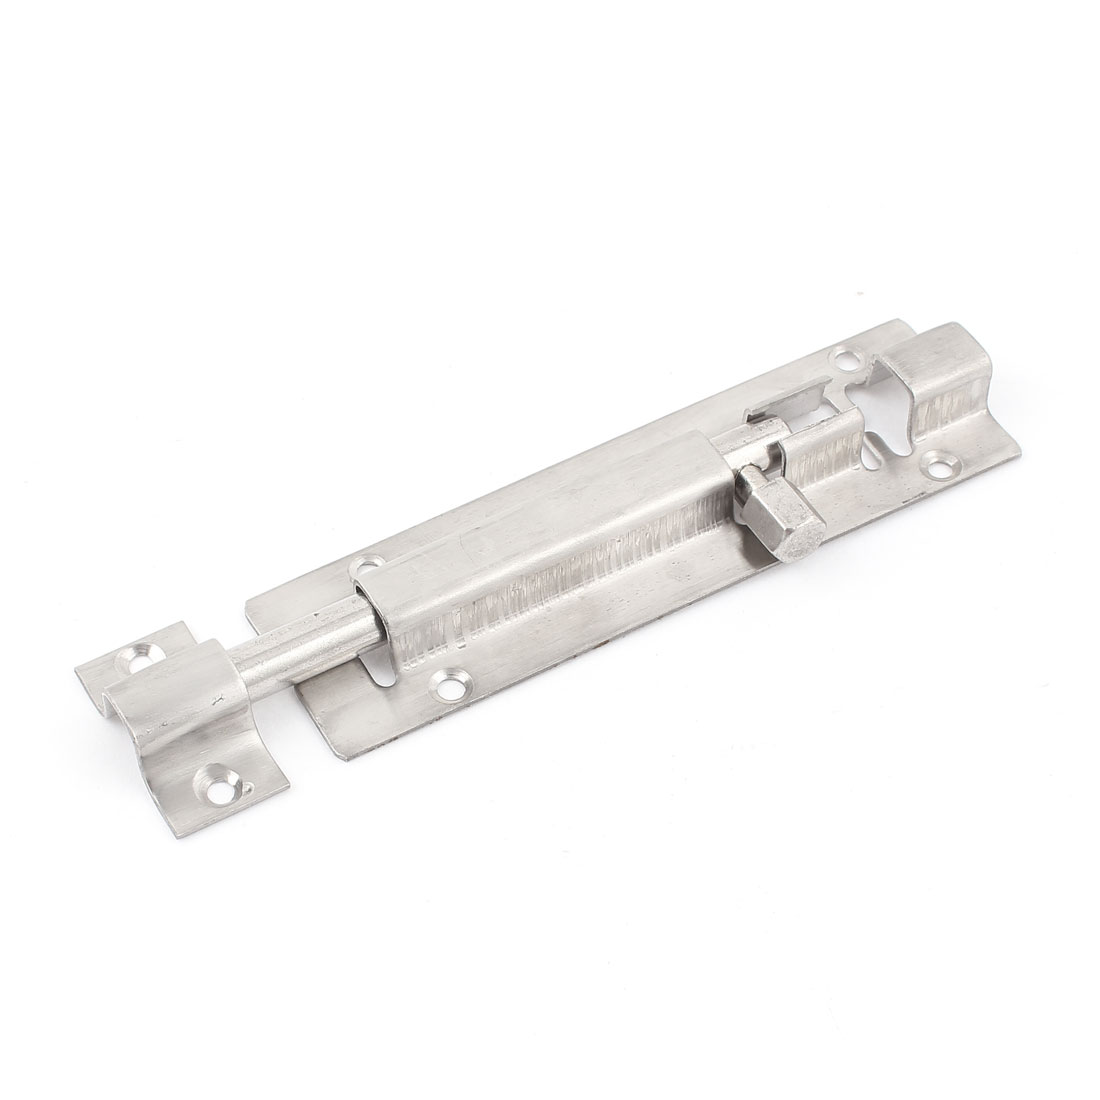 Hasp Stapler Gate Lock Safety Stainless Steel Door Latch Barrel Bolt